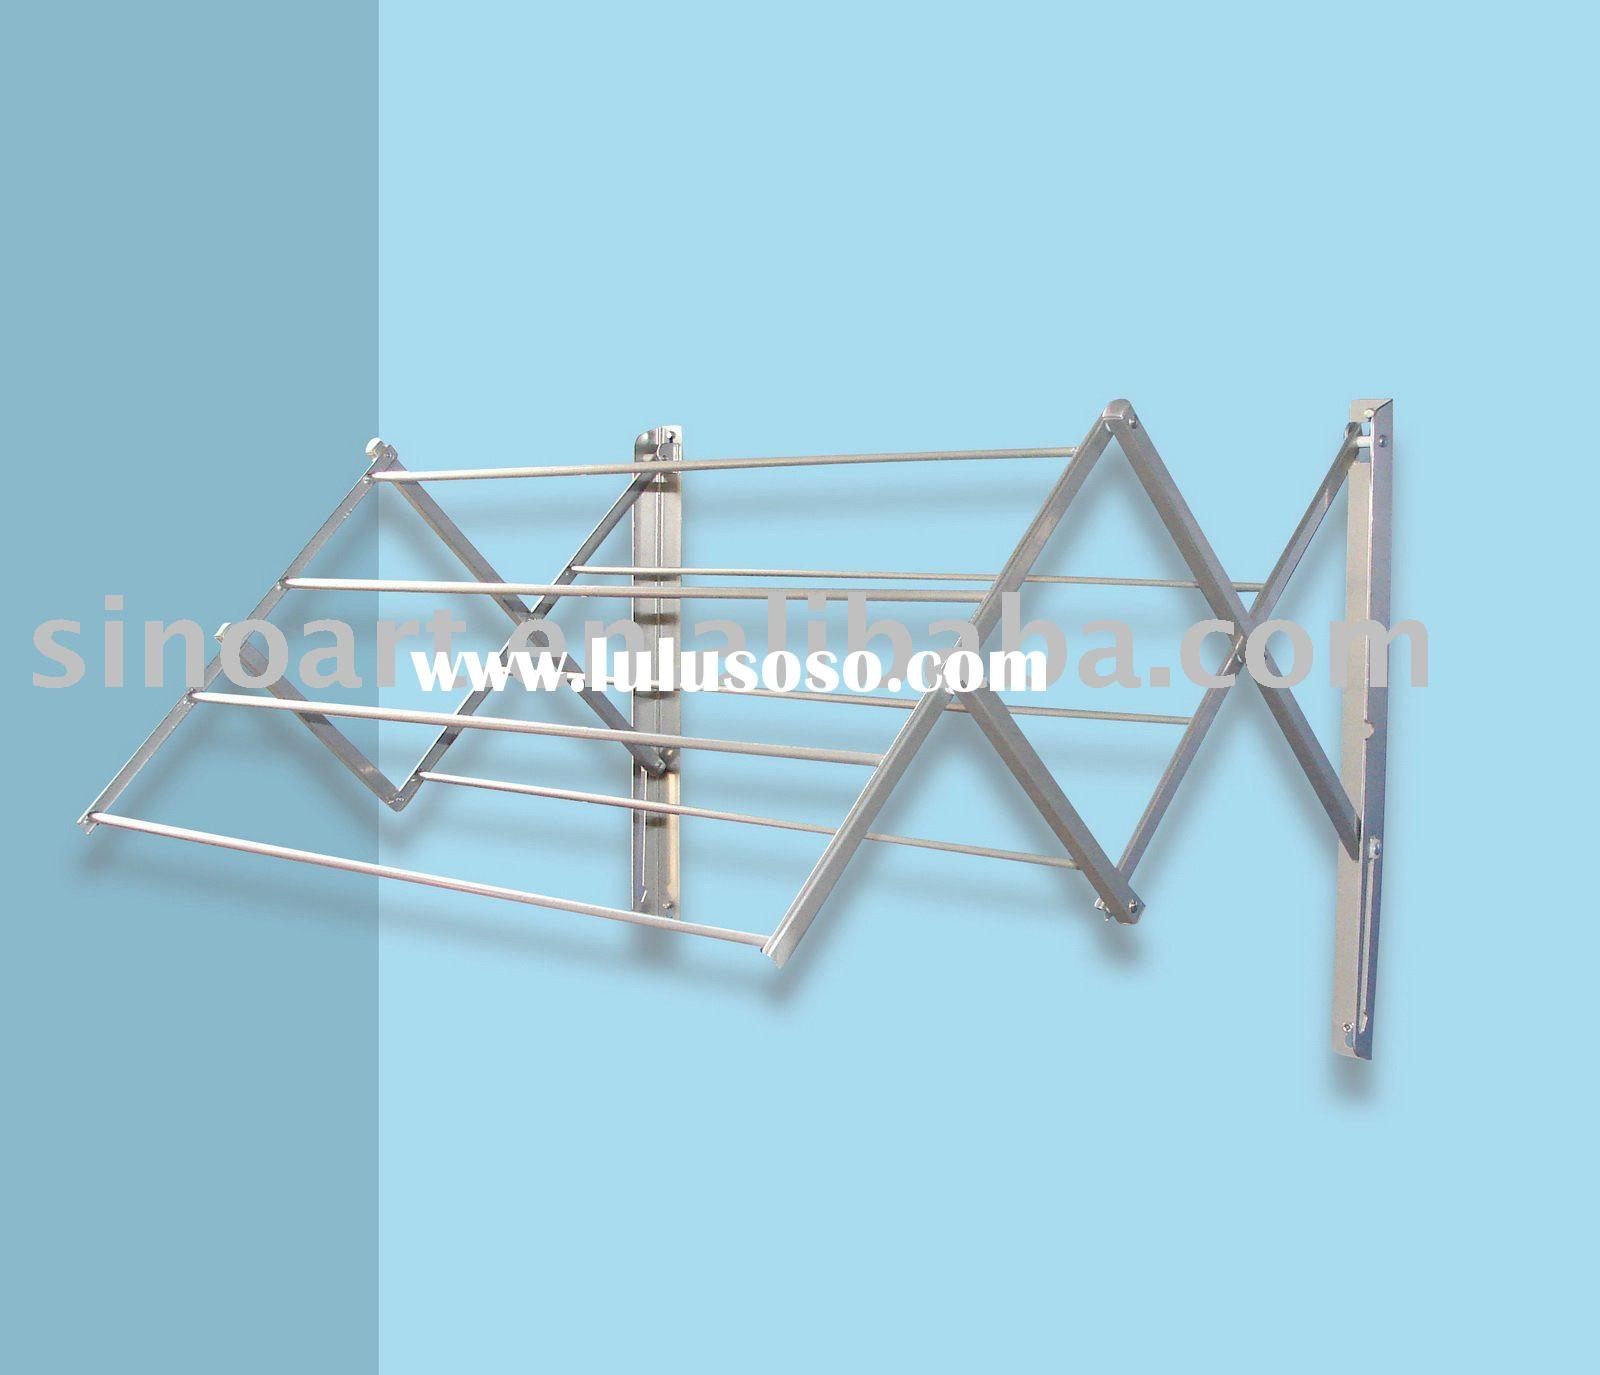 Wall Mounted Dryer Rack For Sale Price China